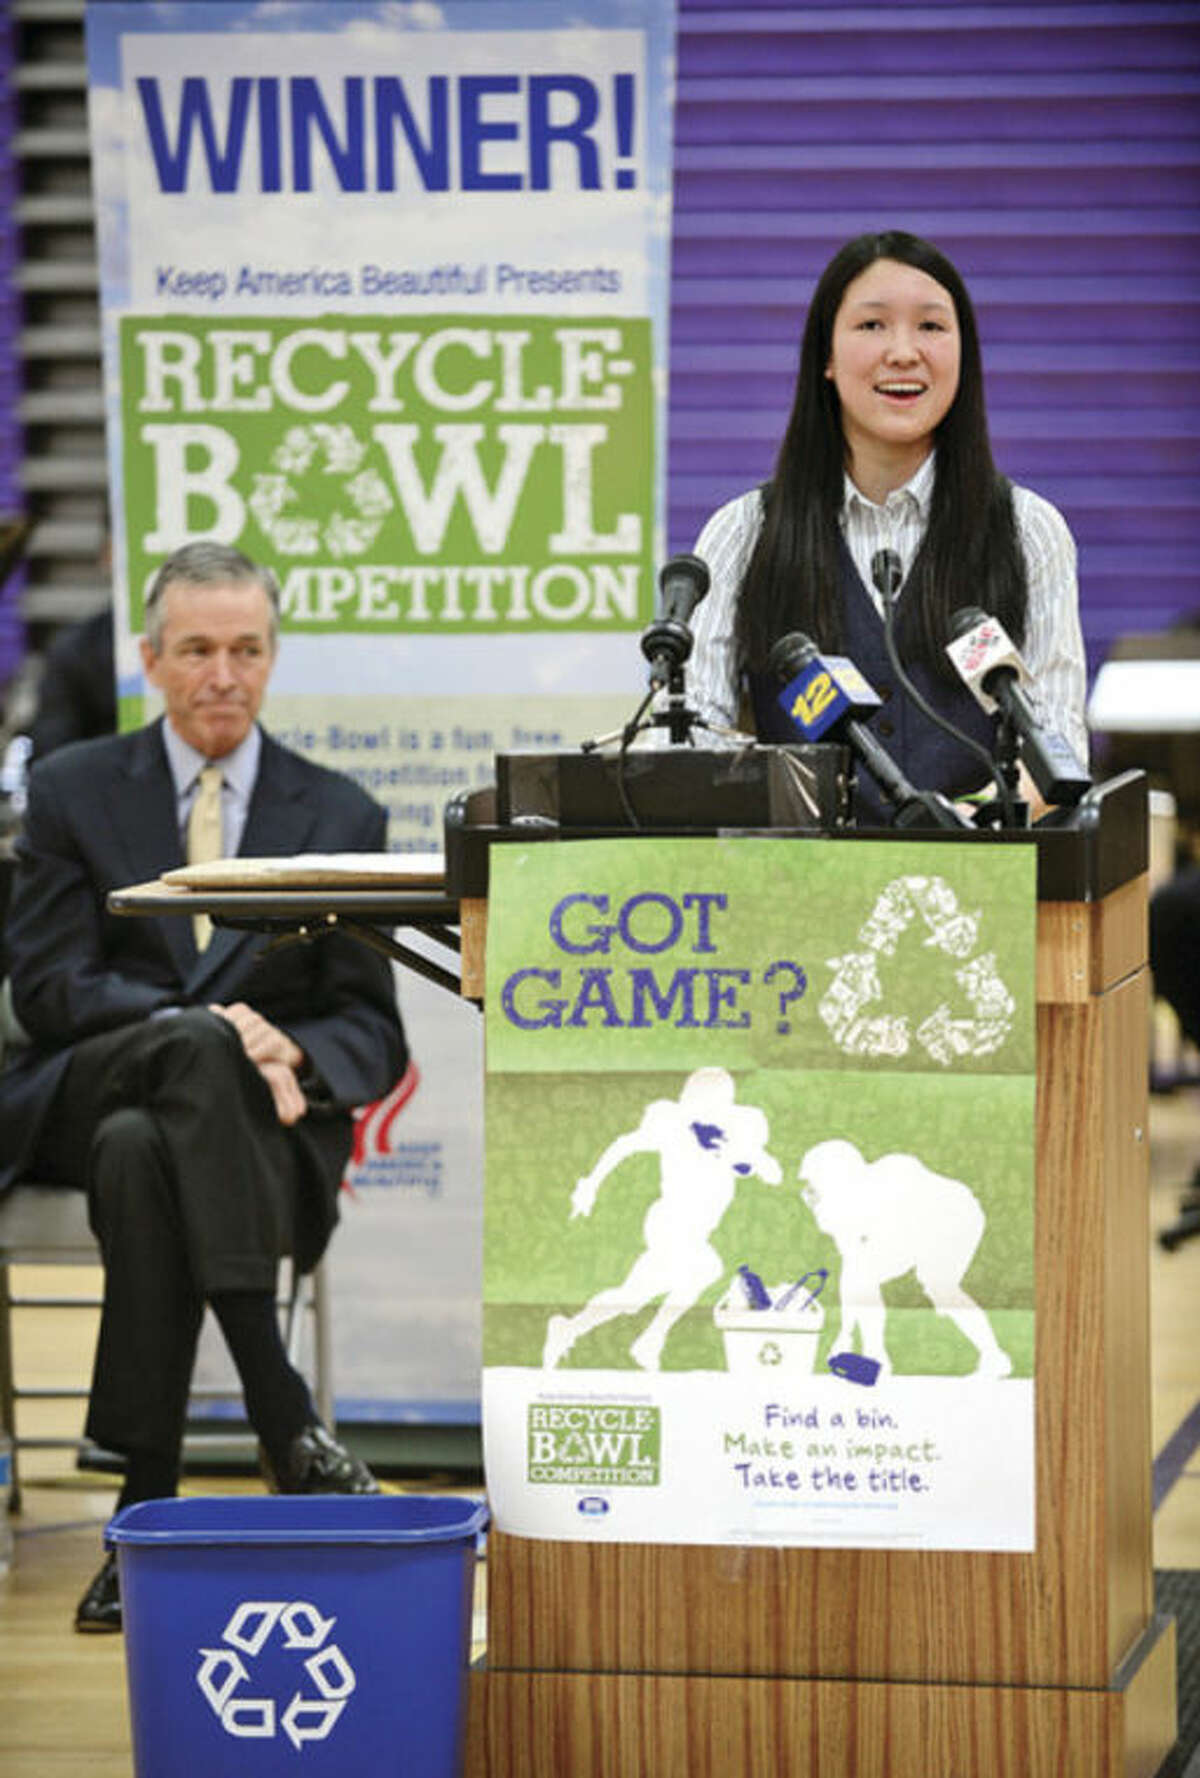 Stamford's Westhill High School senior and Co-president of the school's enviromental club, Eco-Heroes, speaks as the the school holds an award ceremony for their Keep America Beautiful Recycling Bowl win. The high school recycled 3.56 pounds of waste per student, the best of the 28 schools in the state of Connecticut. Hour photo / Erik Trautmann